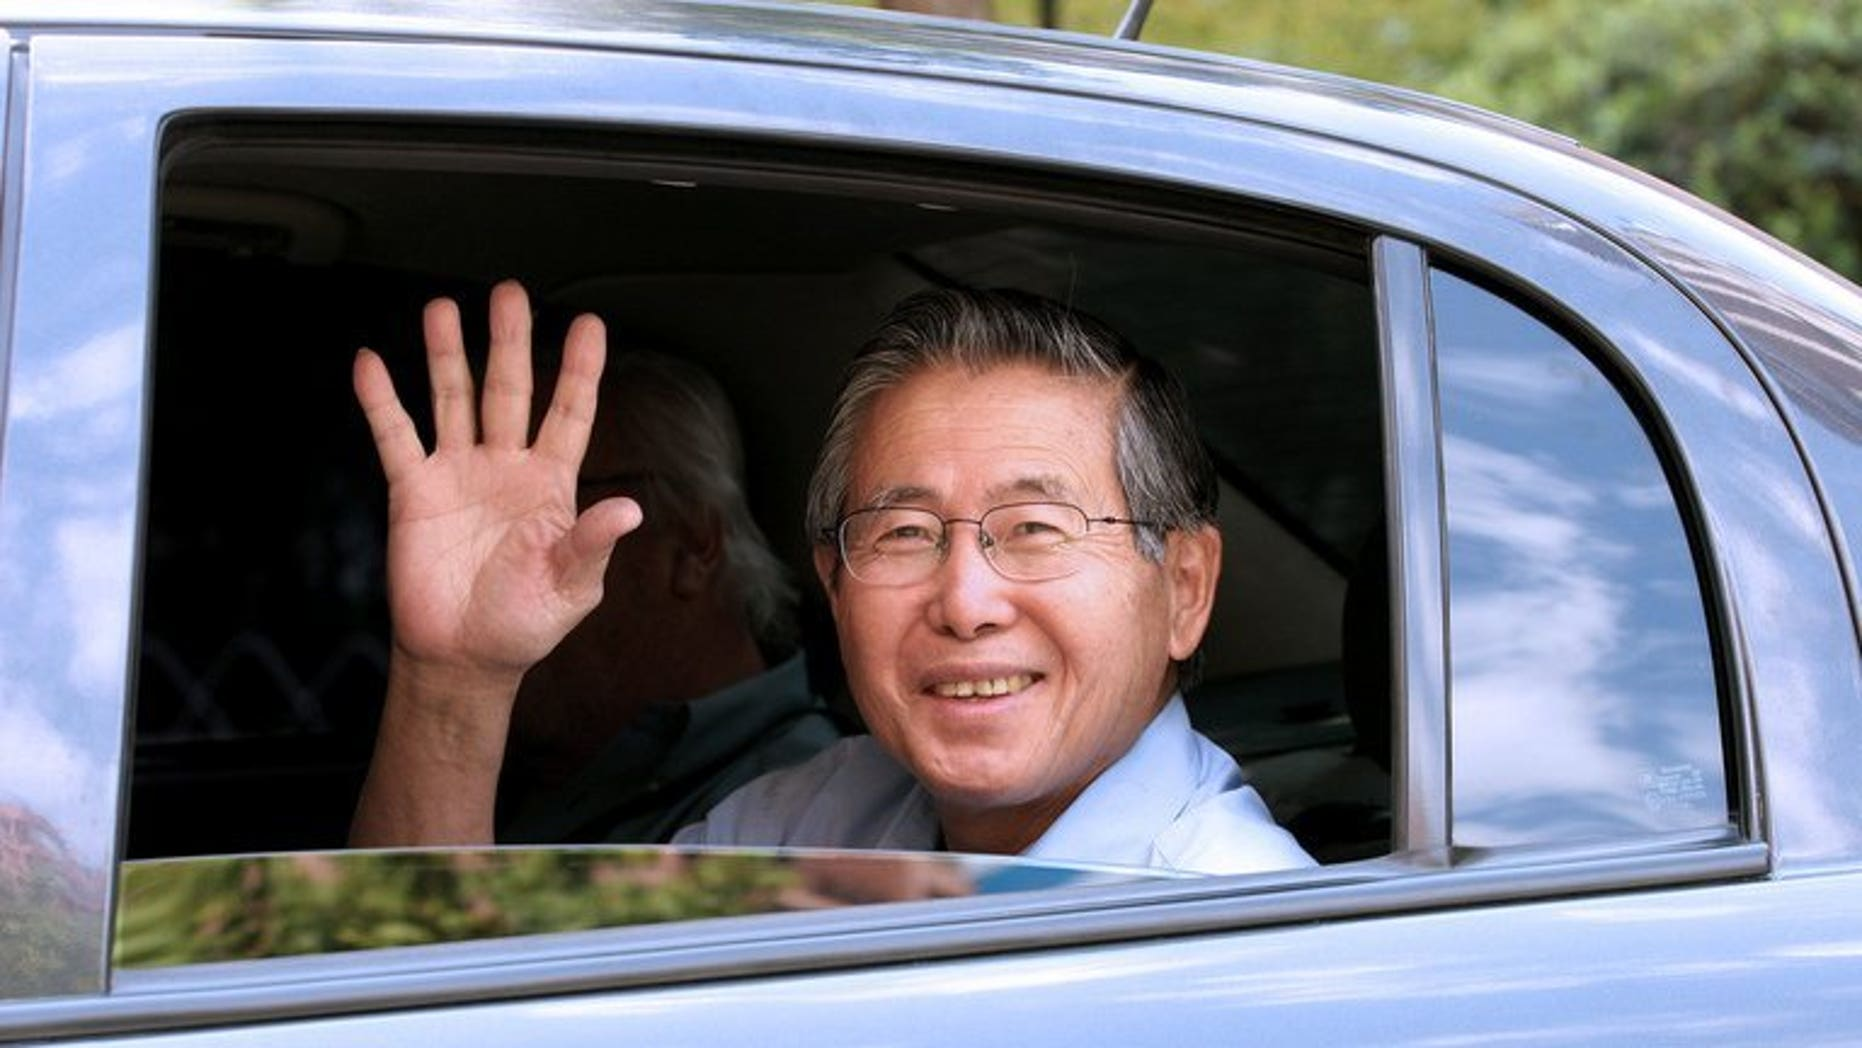 Peru's former president Alberto Fujimori, in prison for rights abuses during his 10-year rule, pictured on February 20, 2007, said Tuesday he's writing his autobiography.